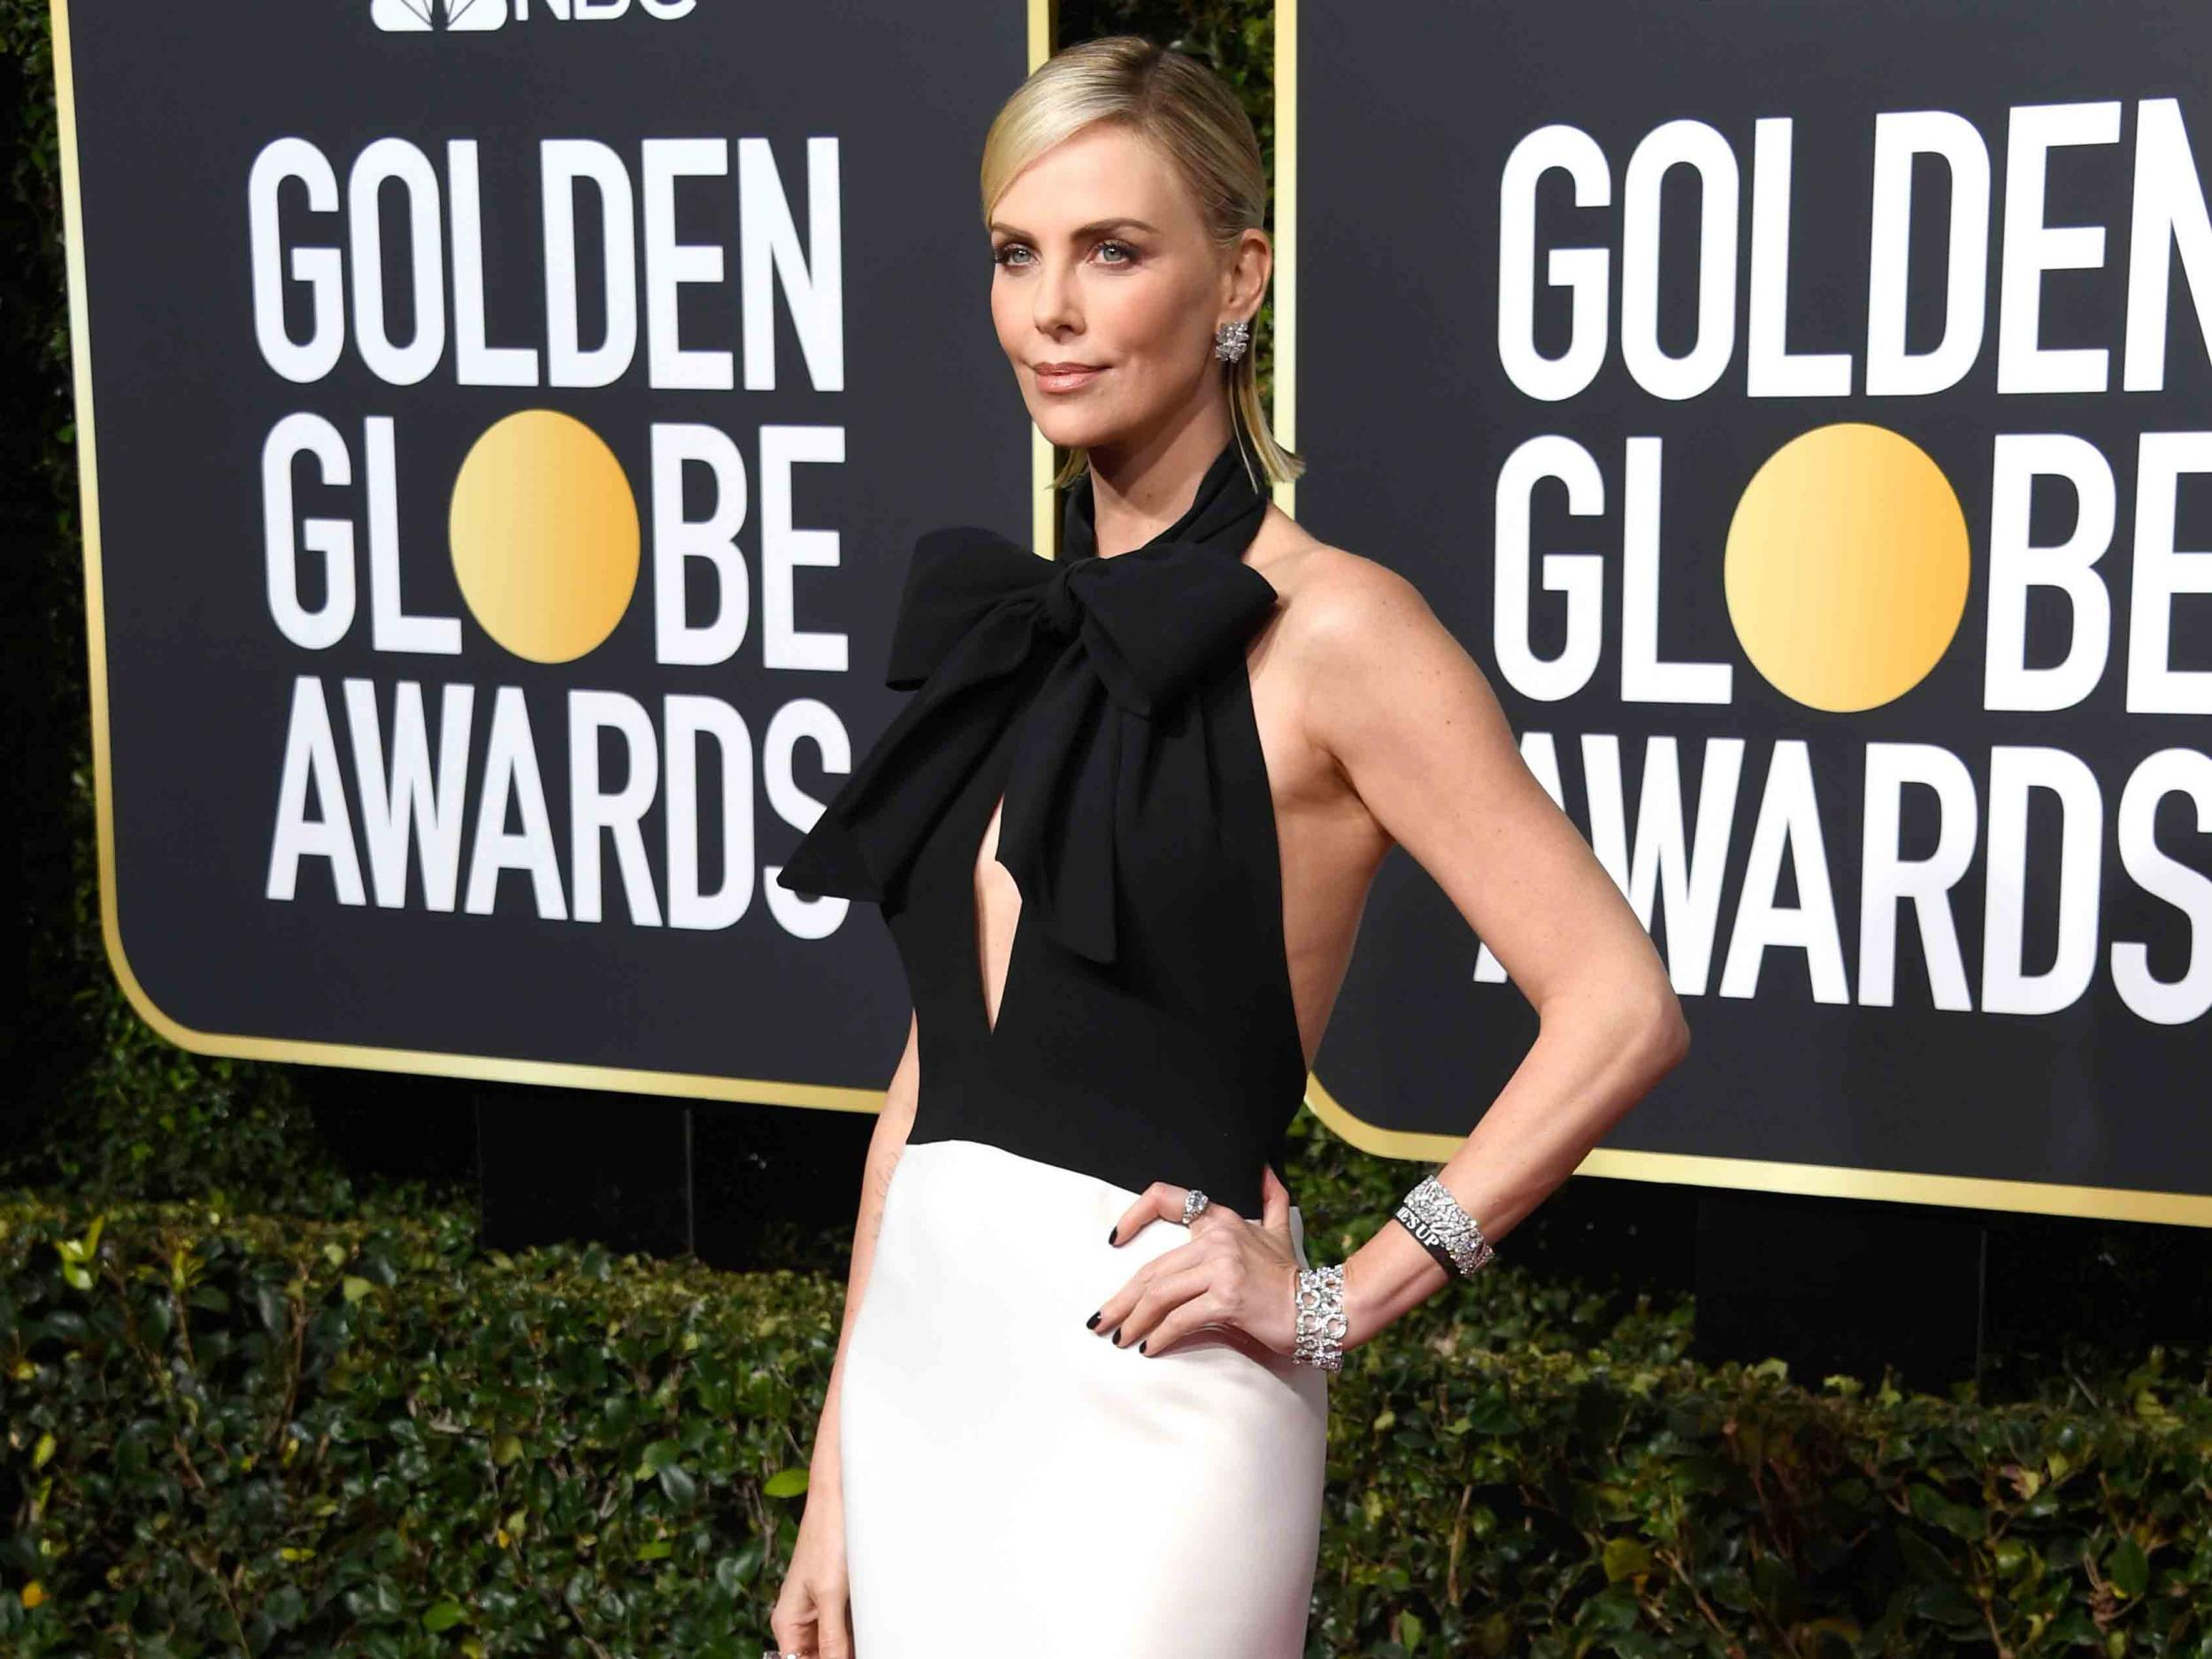 Golden Globes 2019: Stars wear Time's Up bracelets and pins in protest at sexual harassment